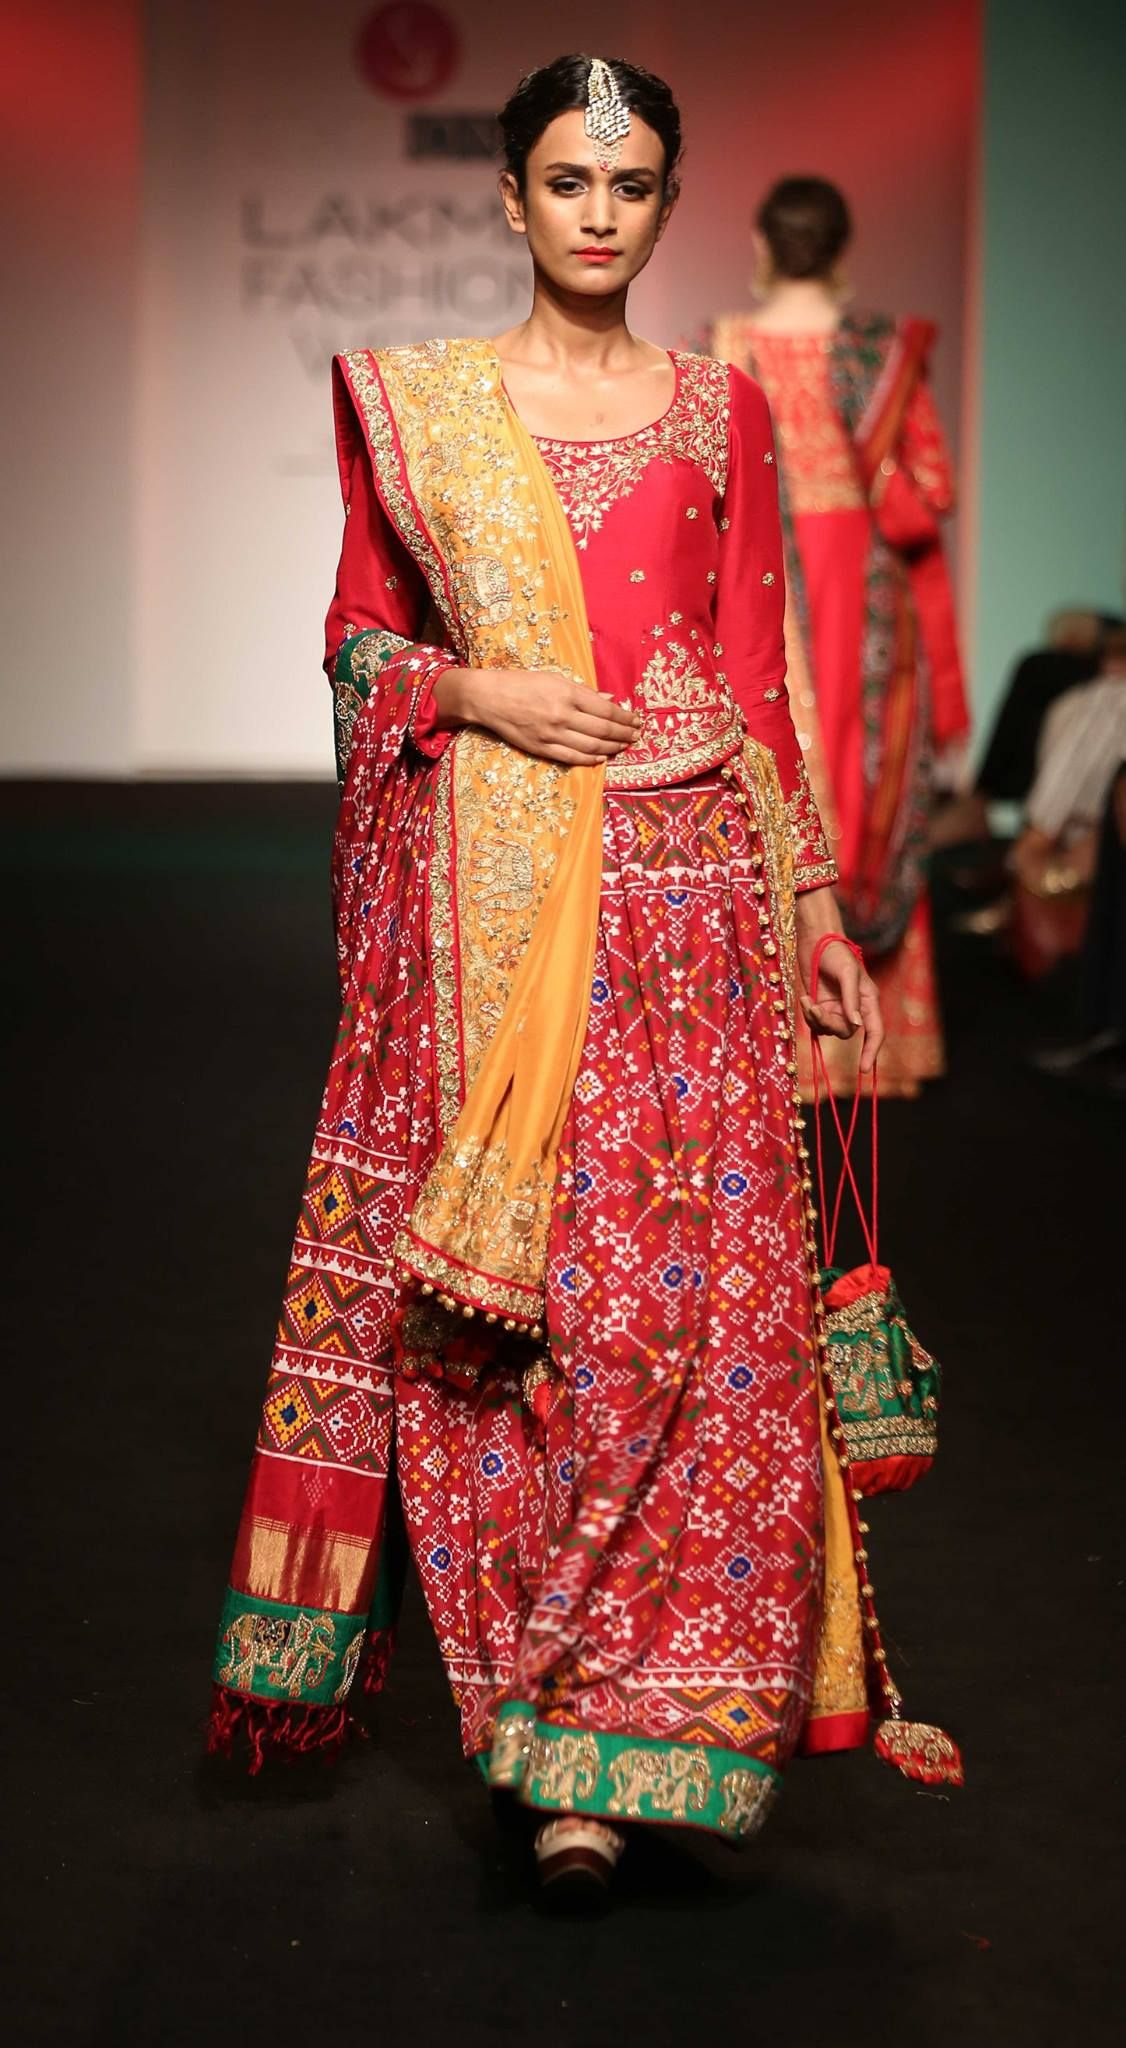 Shop For Your Wedding Trousseau With A Personal Shopper Stylist In India